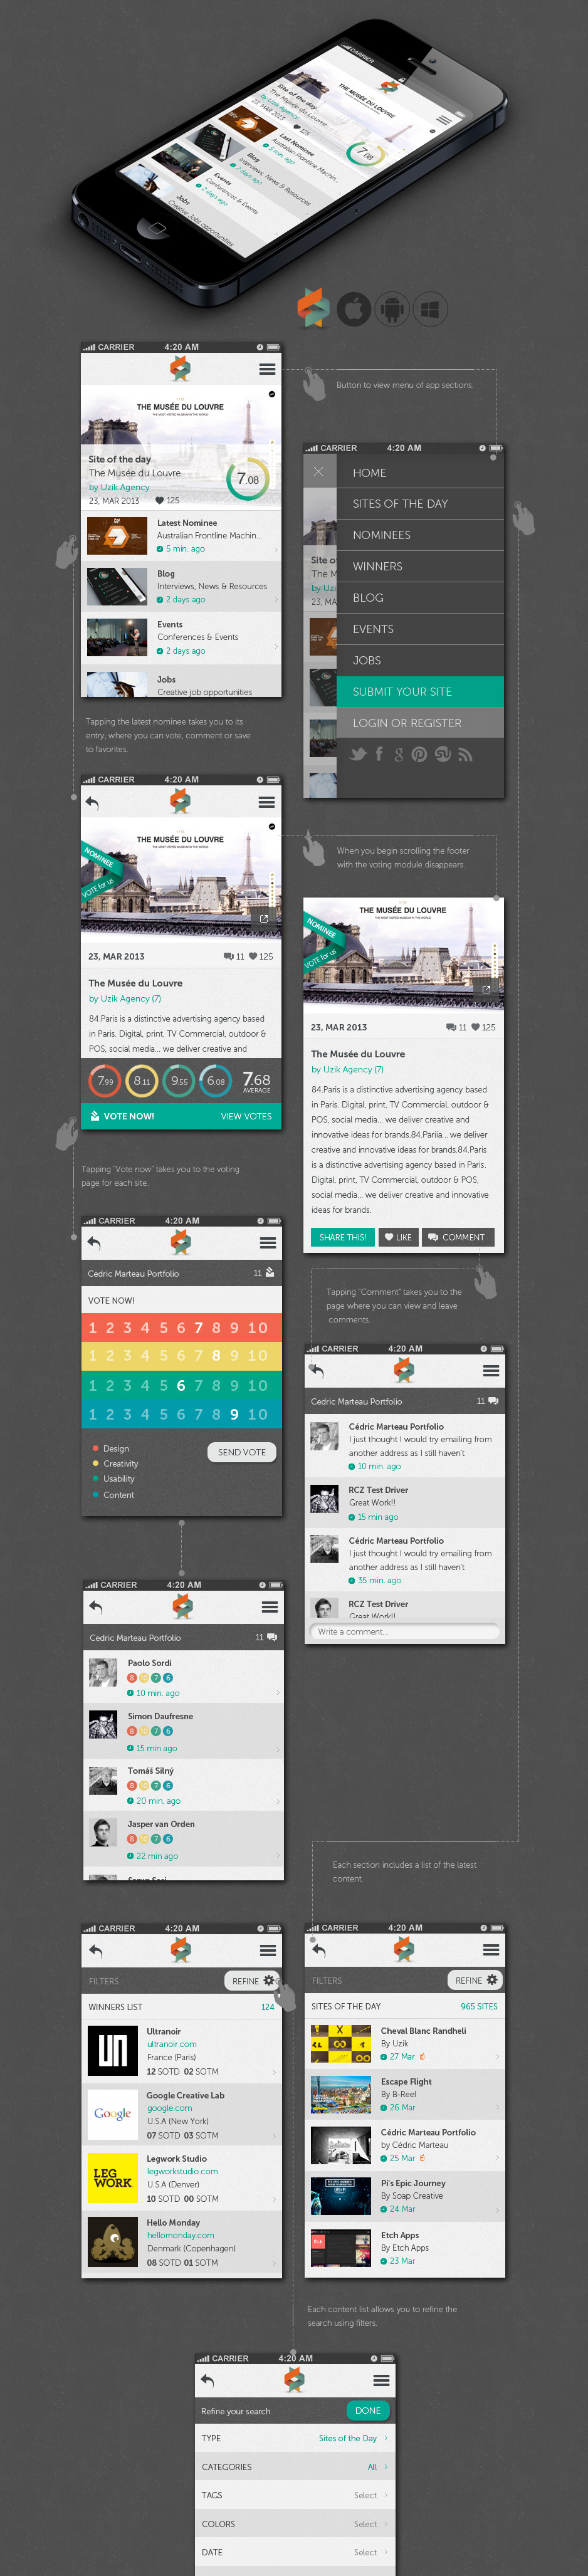 App Design Ideas 2467521 mobile ui login form design how to do it properly Help Us Create The New Awwwards Mobile App